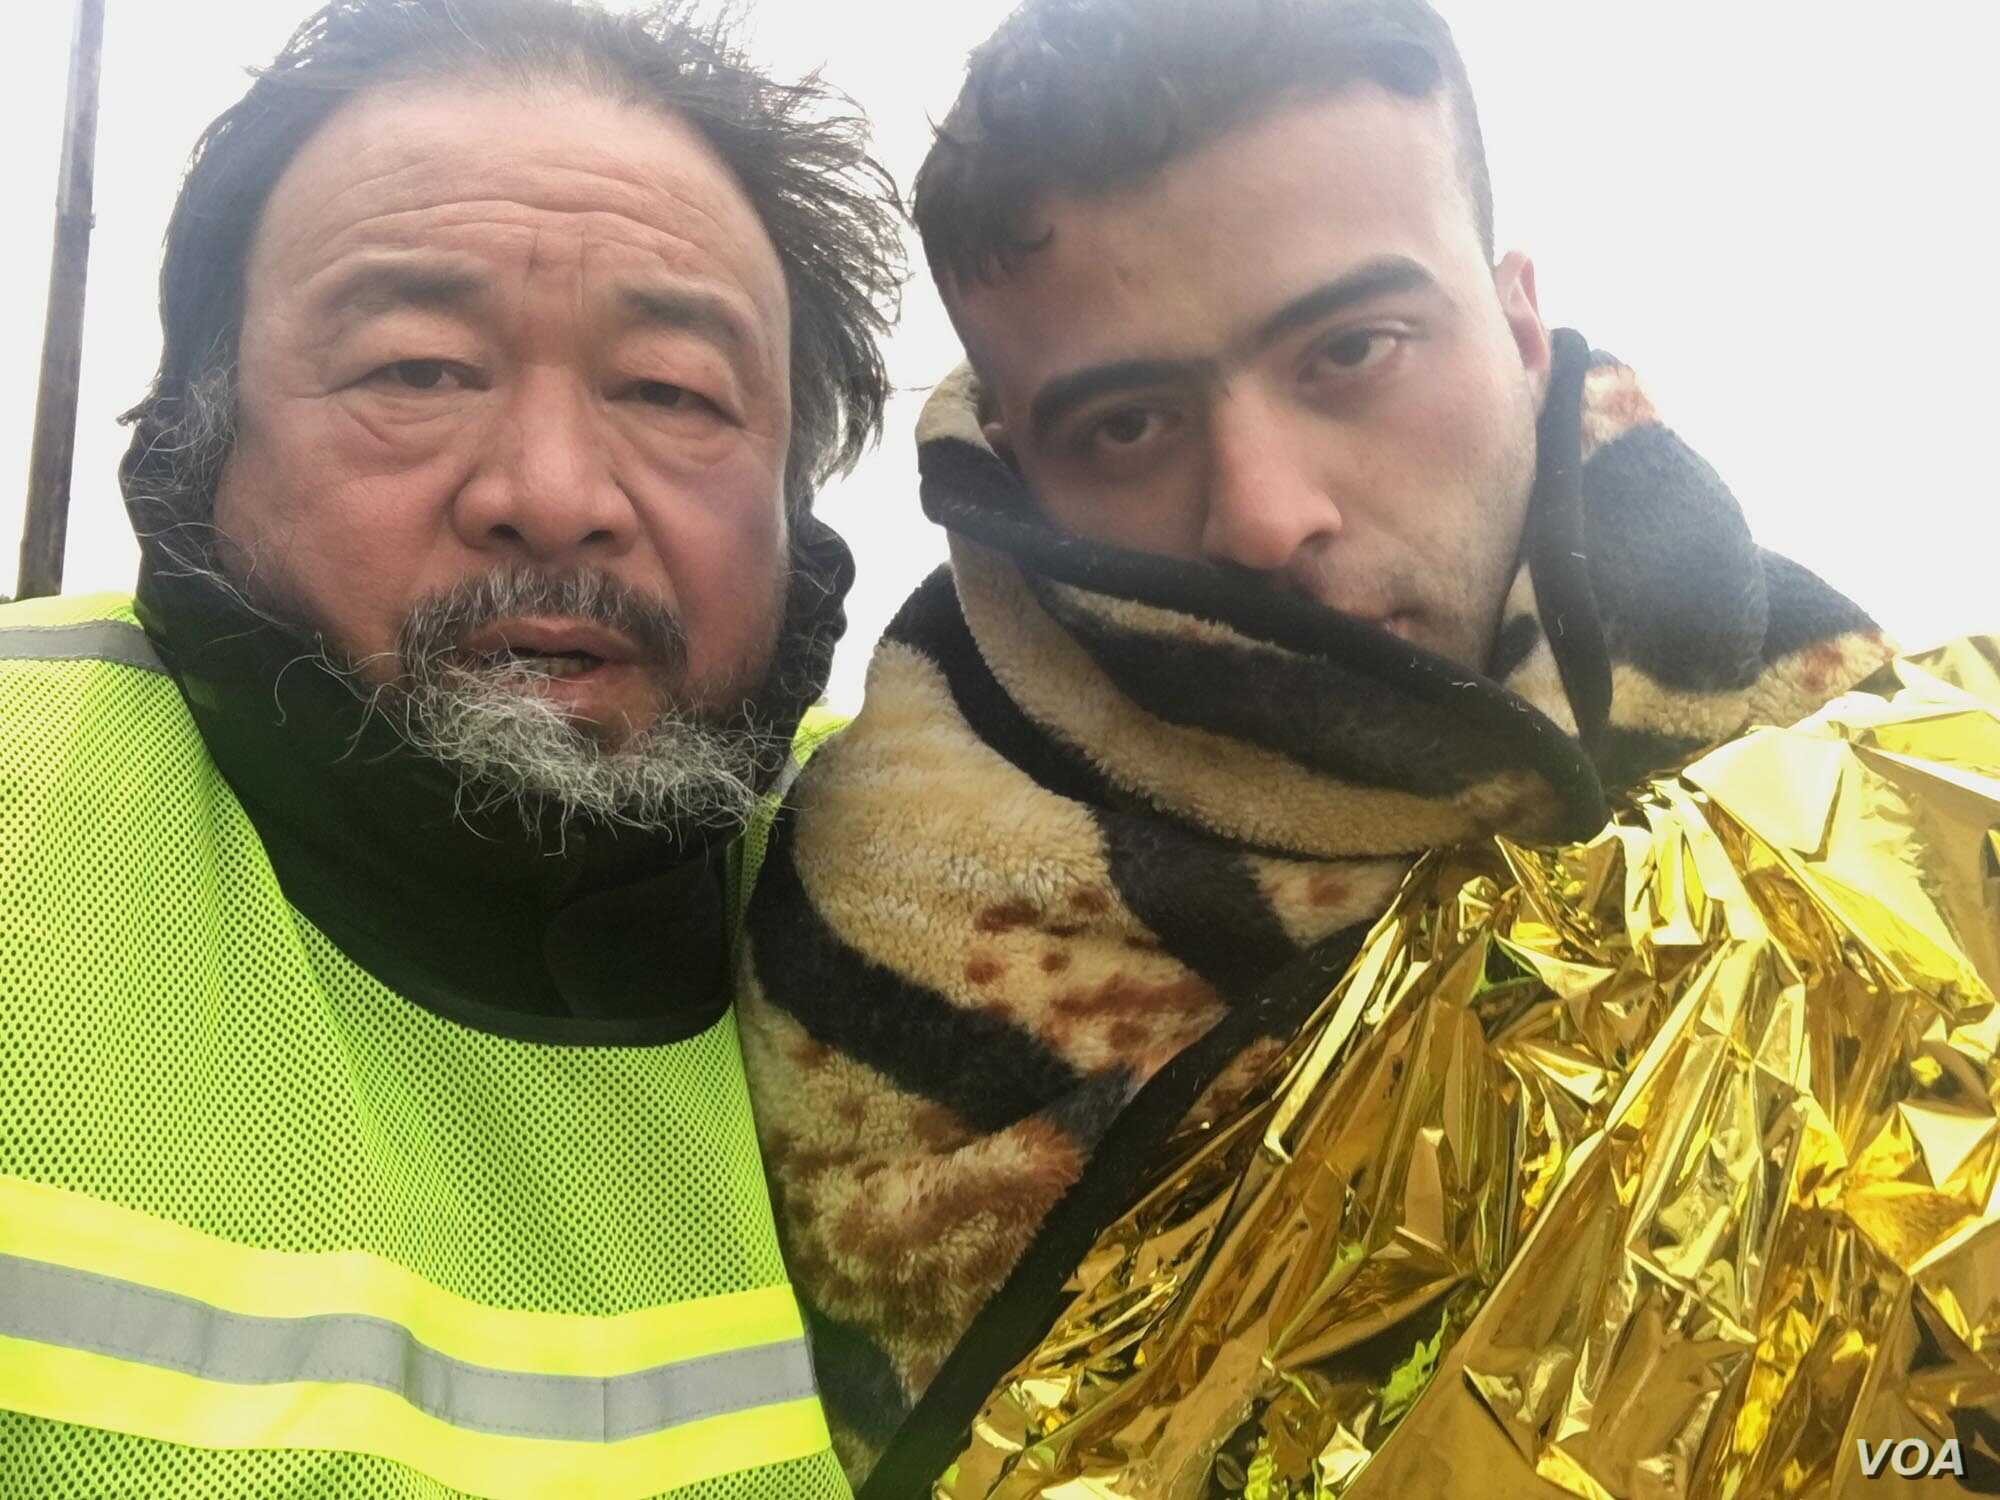 Ai Weiwei with refugee in scene from 'Human Flow' documentary.